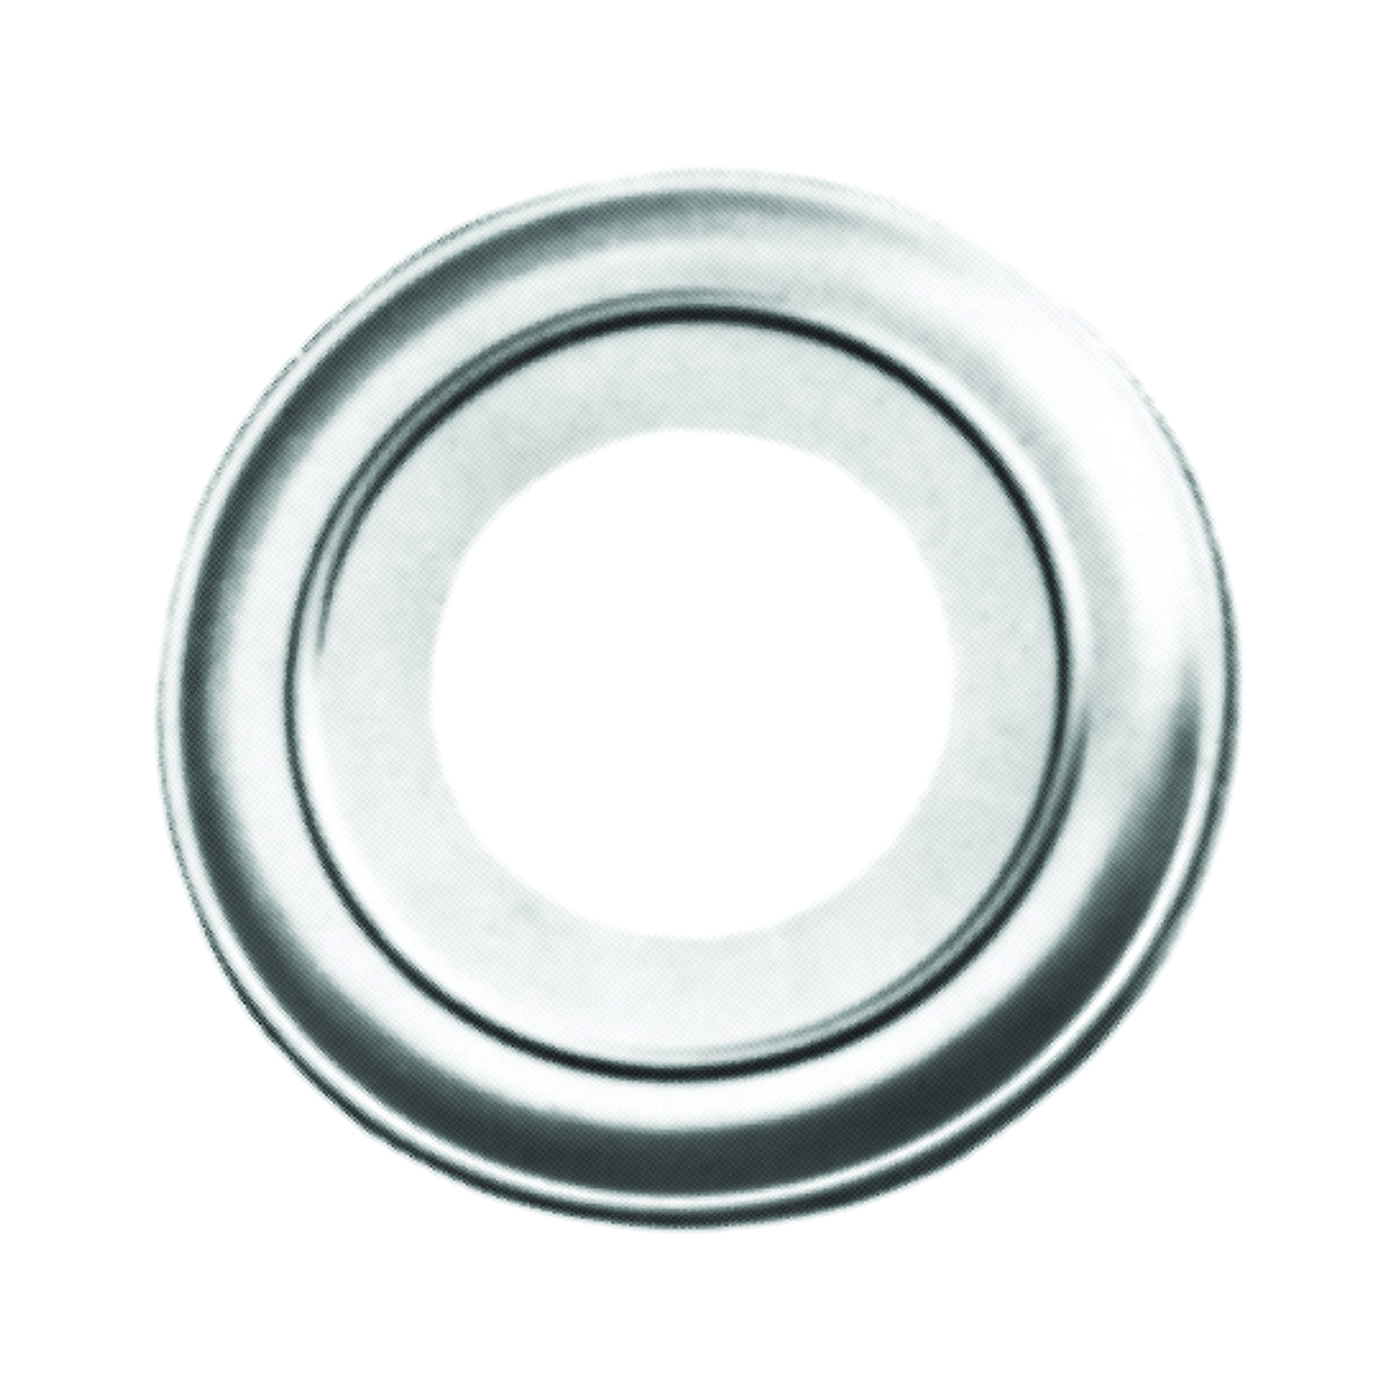 Picture of AmeriVent 5EVC Vent Collar, 5 in Vent Hole, Galvanized Steel